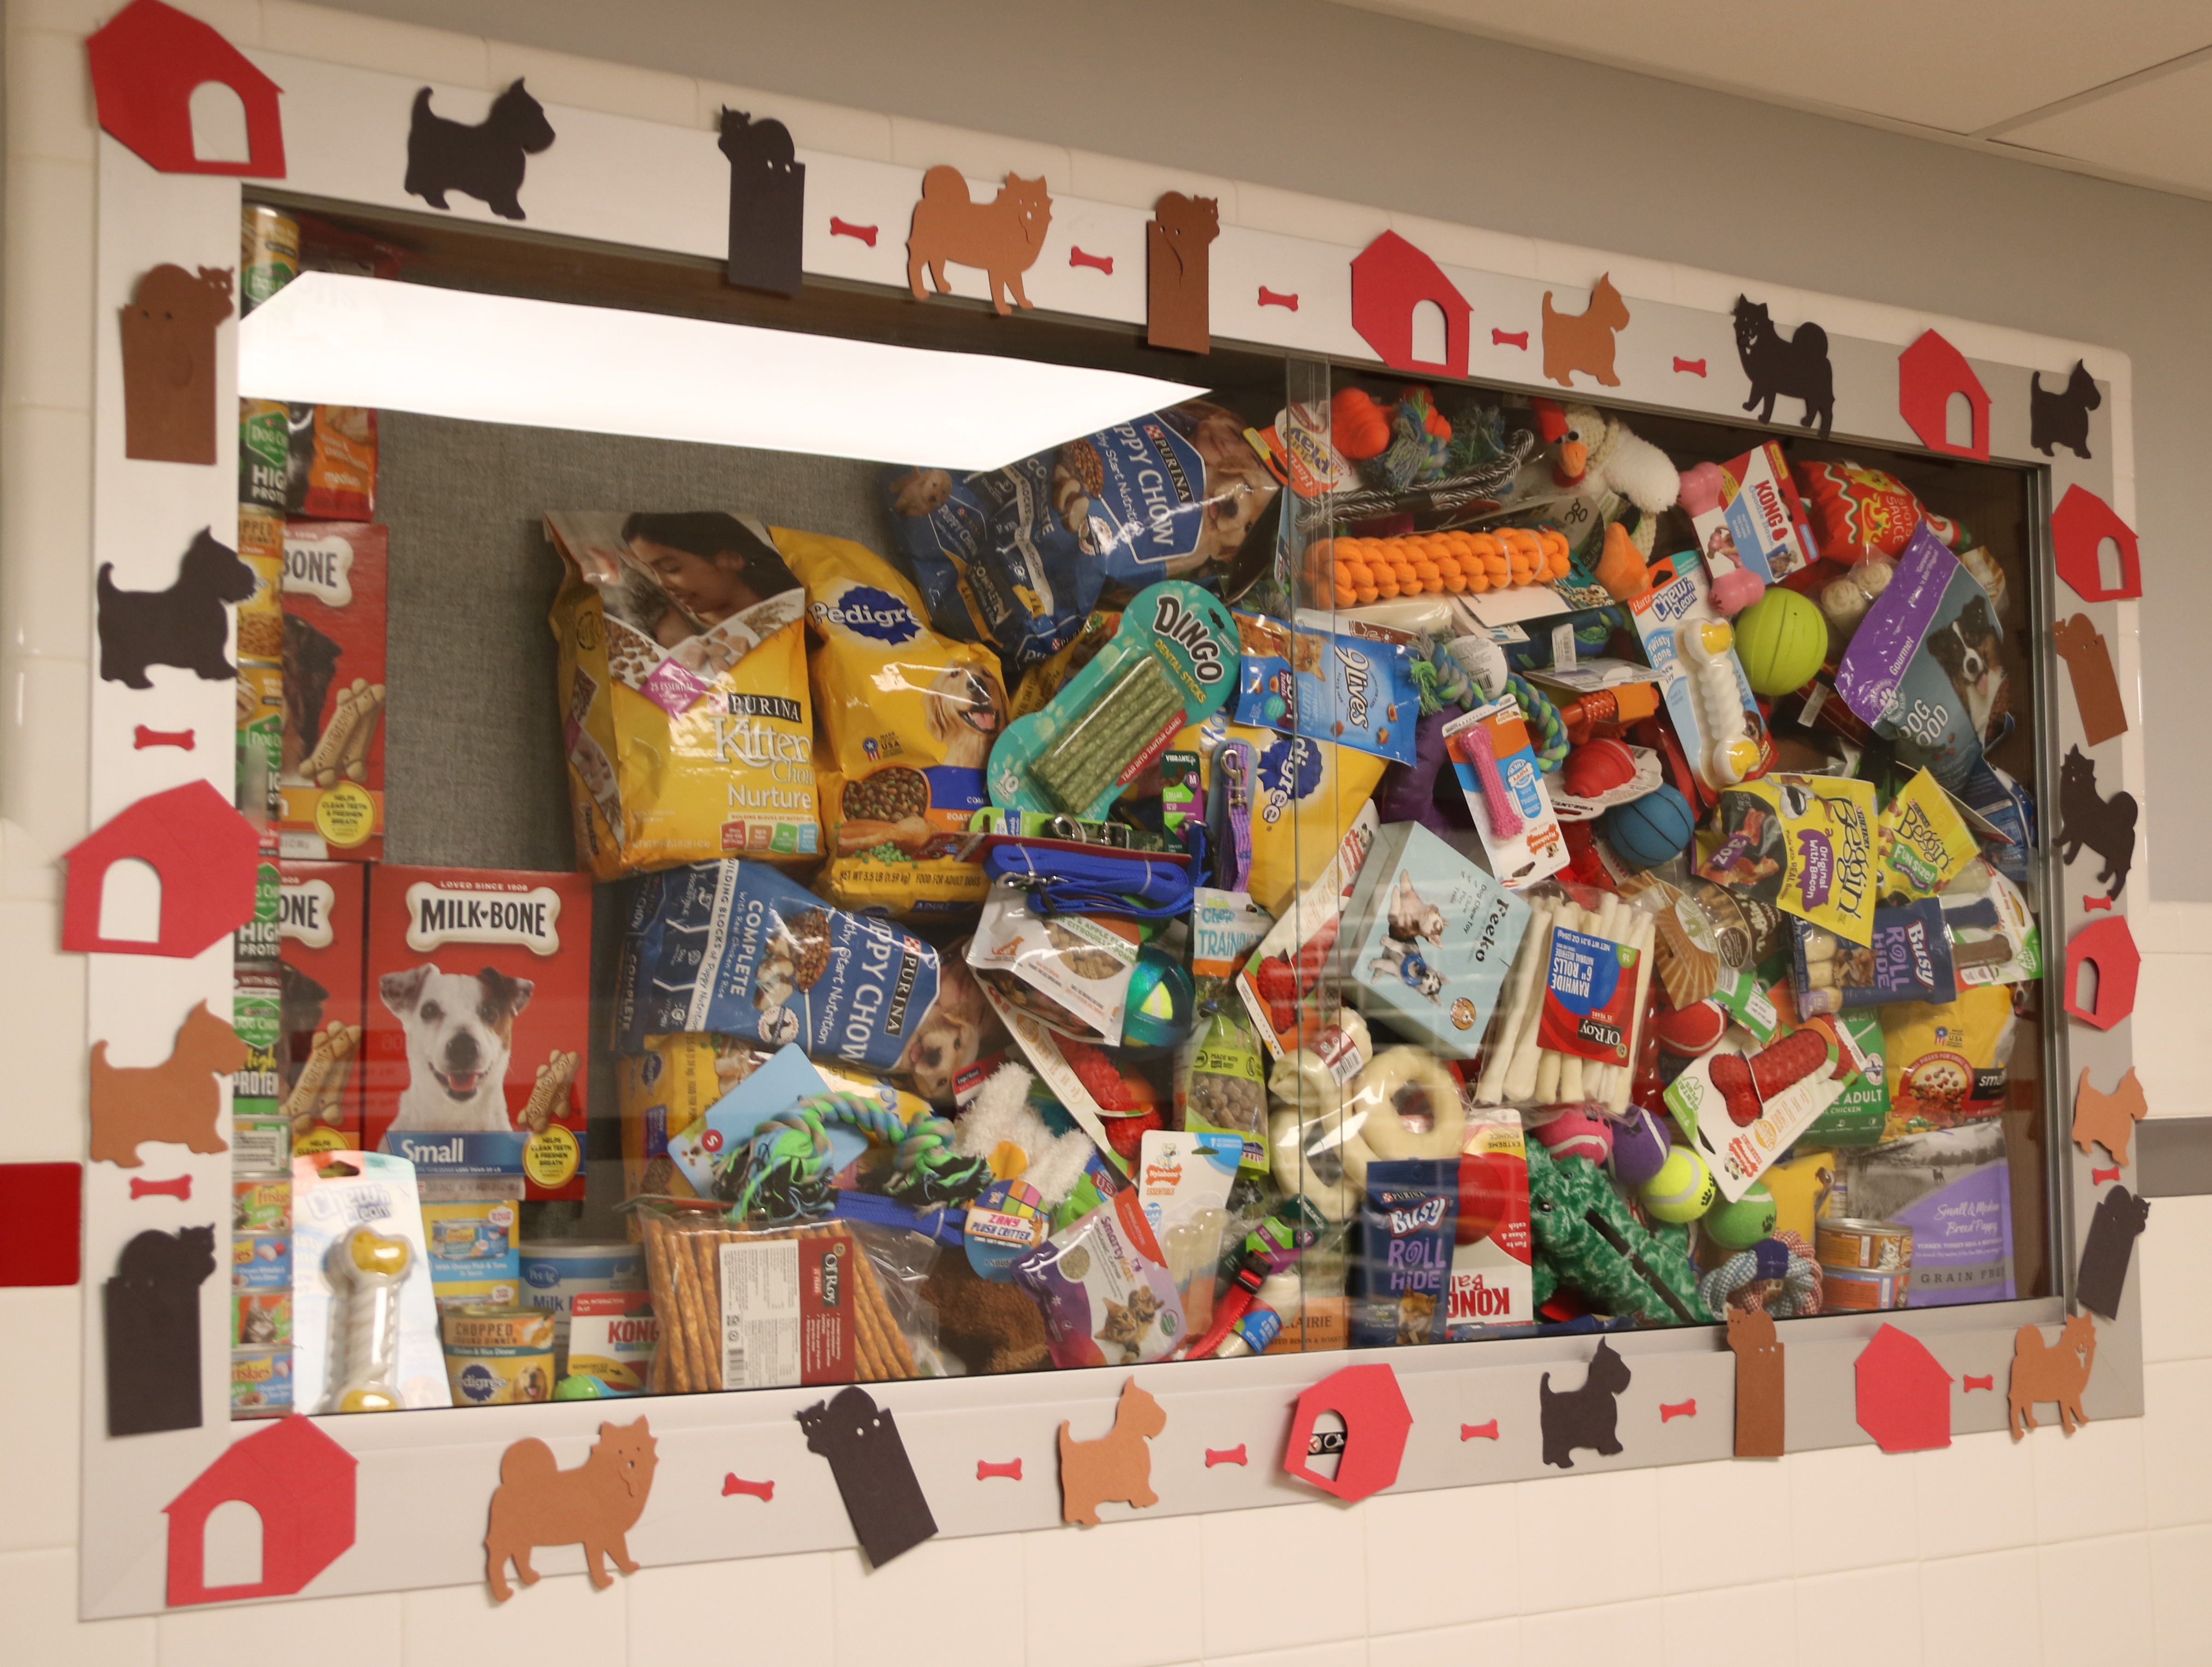 donations collected on display